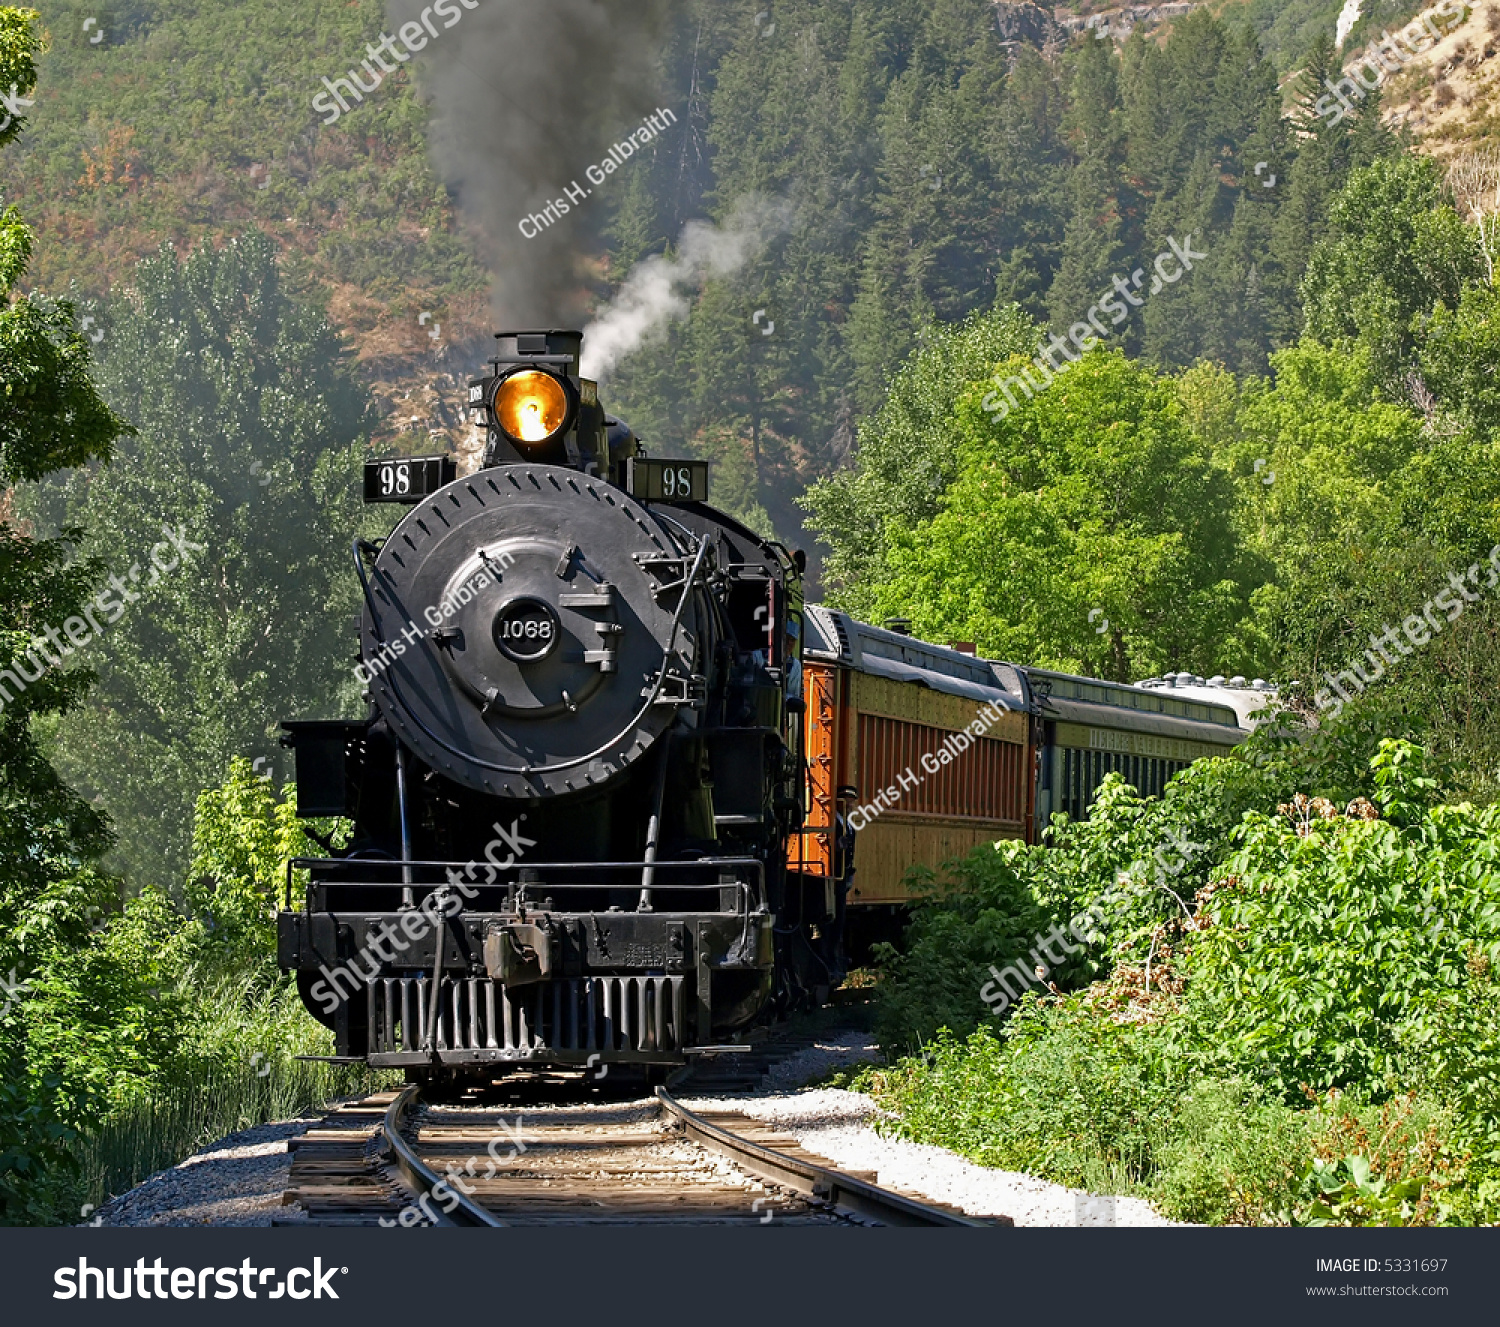 travelling locomotive and train Visit trainline the uk's leading independent train ticket retailer for cheap train tickets buy in advance & save 43% find uk train times get the app.